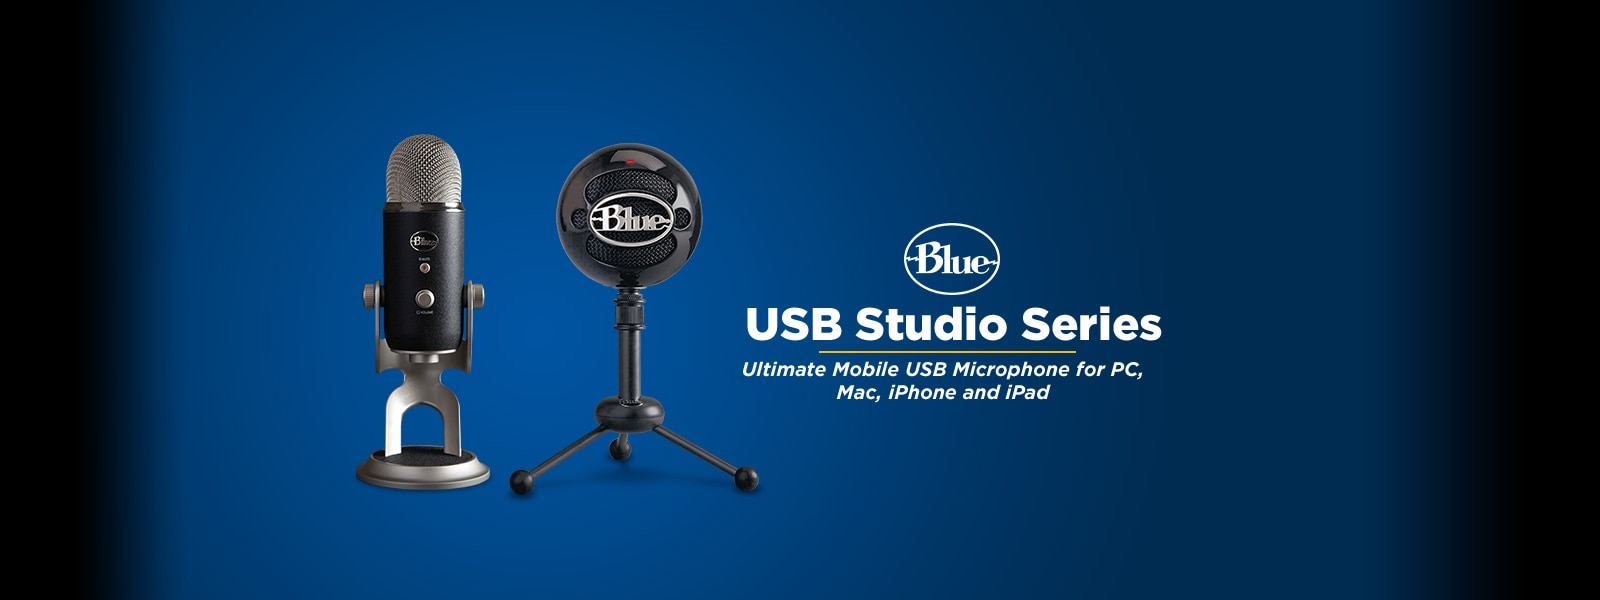 BLUE�USB Studio Series